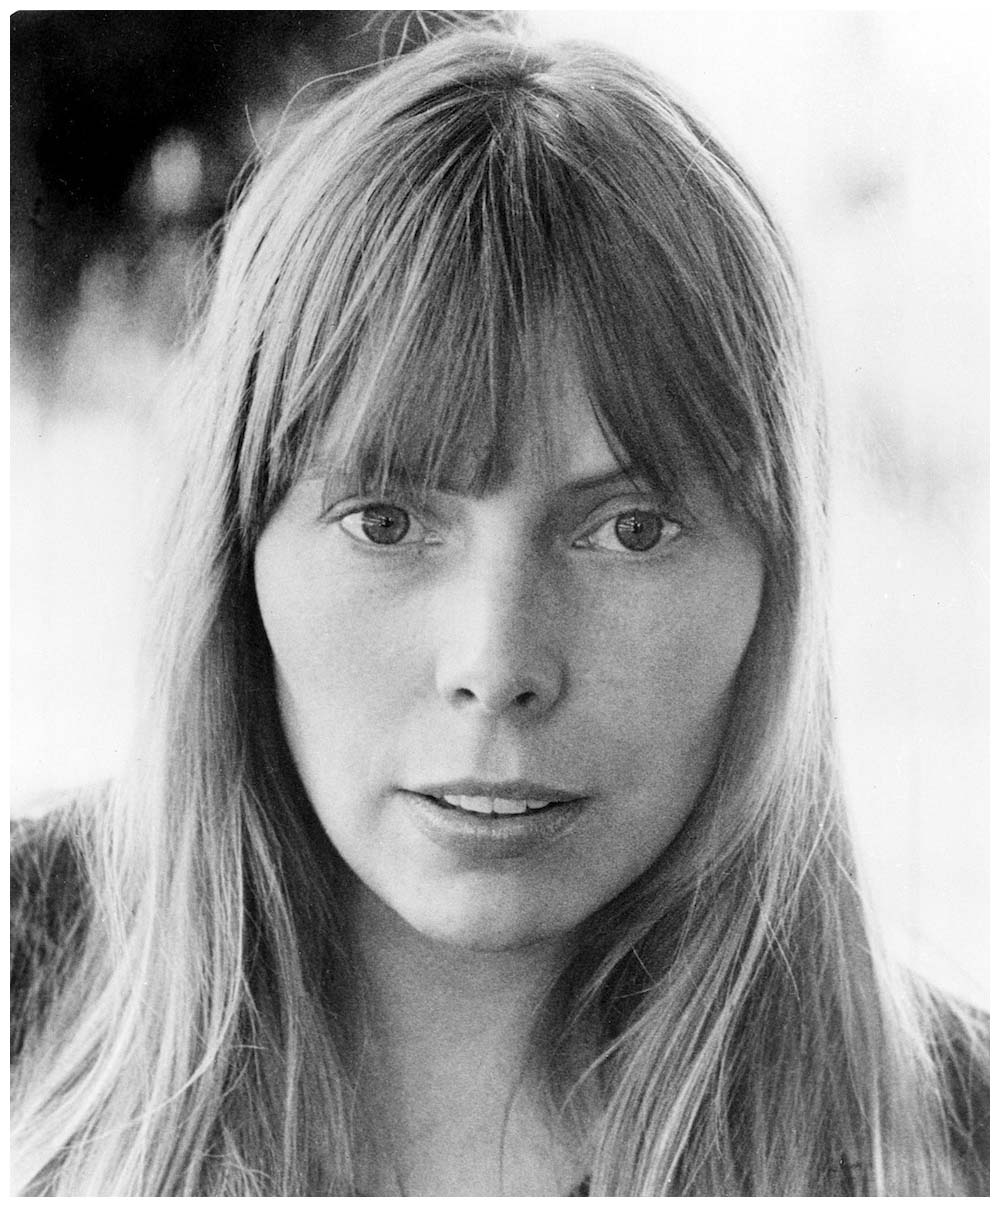 """Joni Mitchell in 1972, the year before """"Free Man in Paris"""" was released on the album """"Court and Spark"""""""